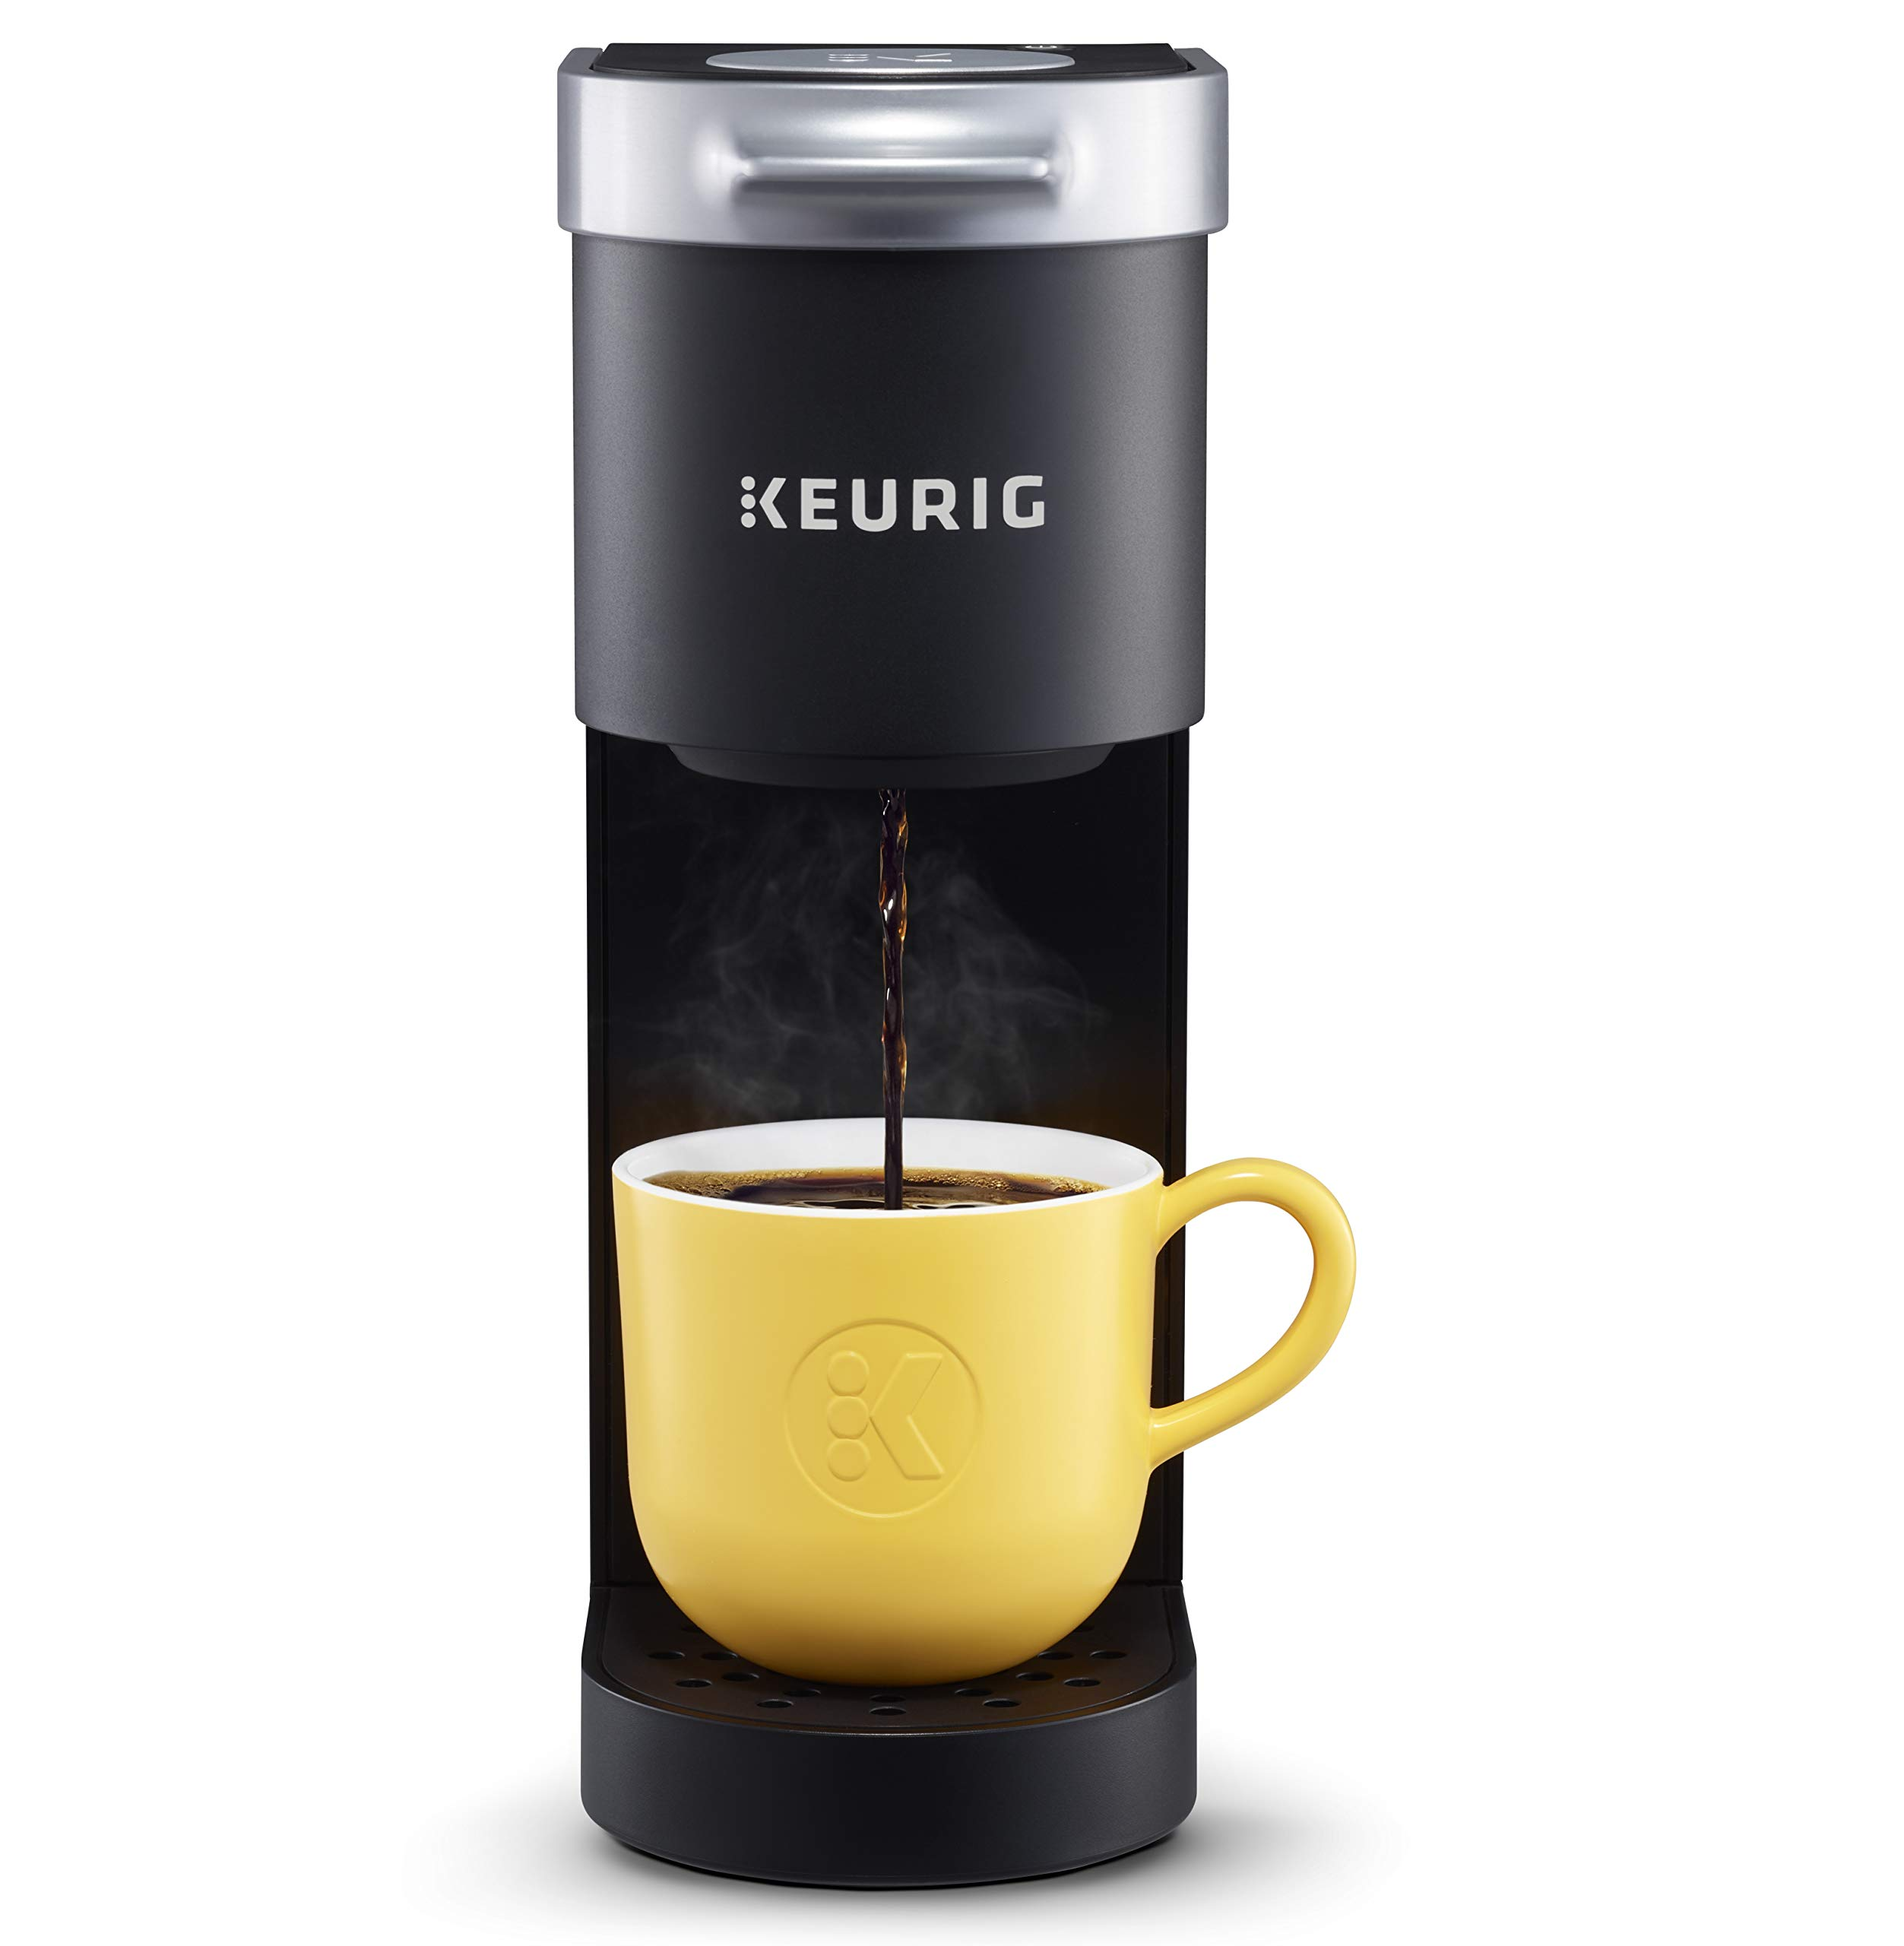 Keurig K-Mini Basic Coffee Maker, Single Serve K-Cup Pod Coffee Brewer, 6 To 12 Oz. Brew Sizes, Matte Black by Keurig